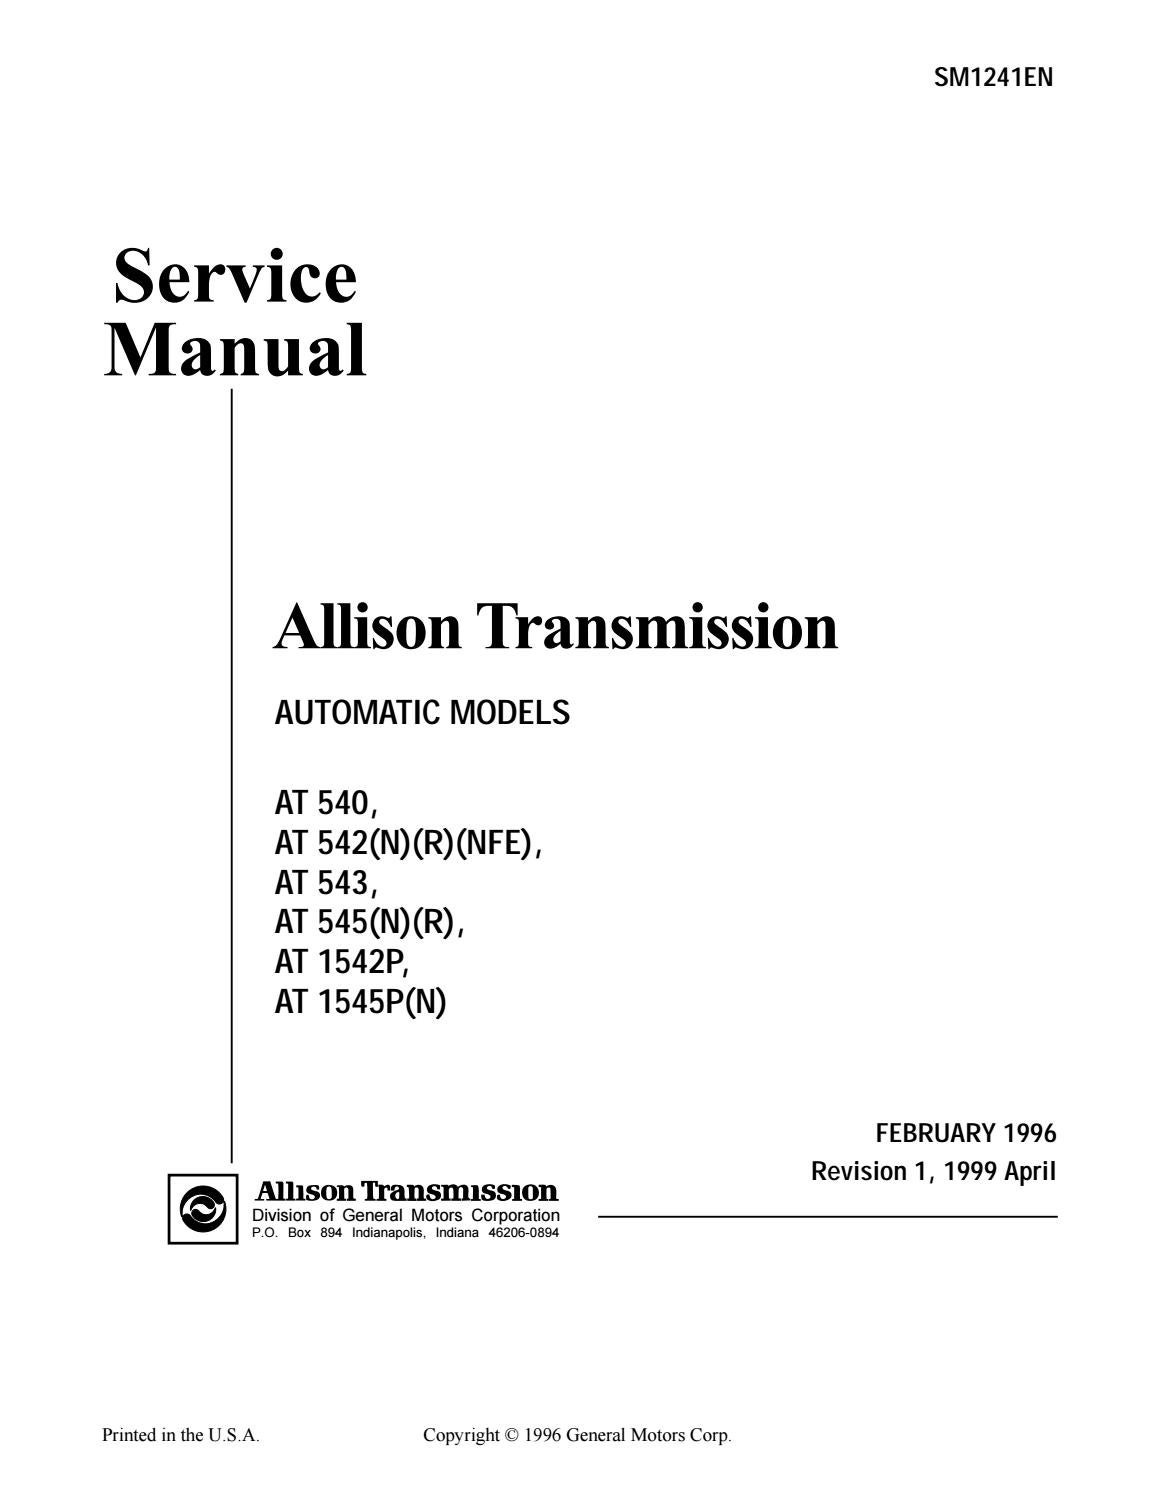 Allison Transmission AT 545 Service Repair Manual by